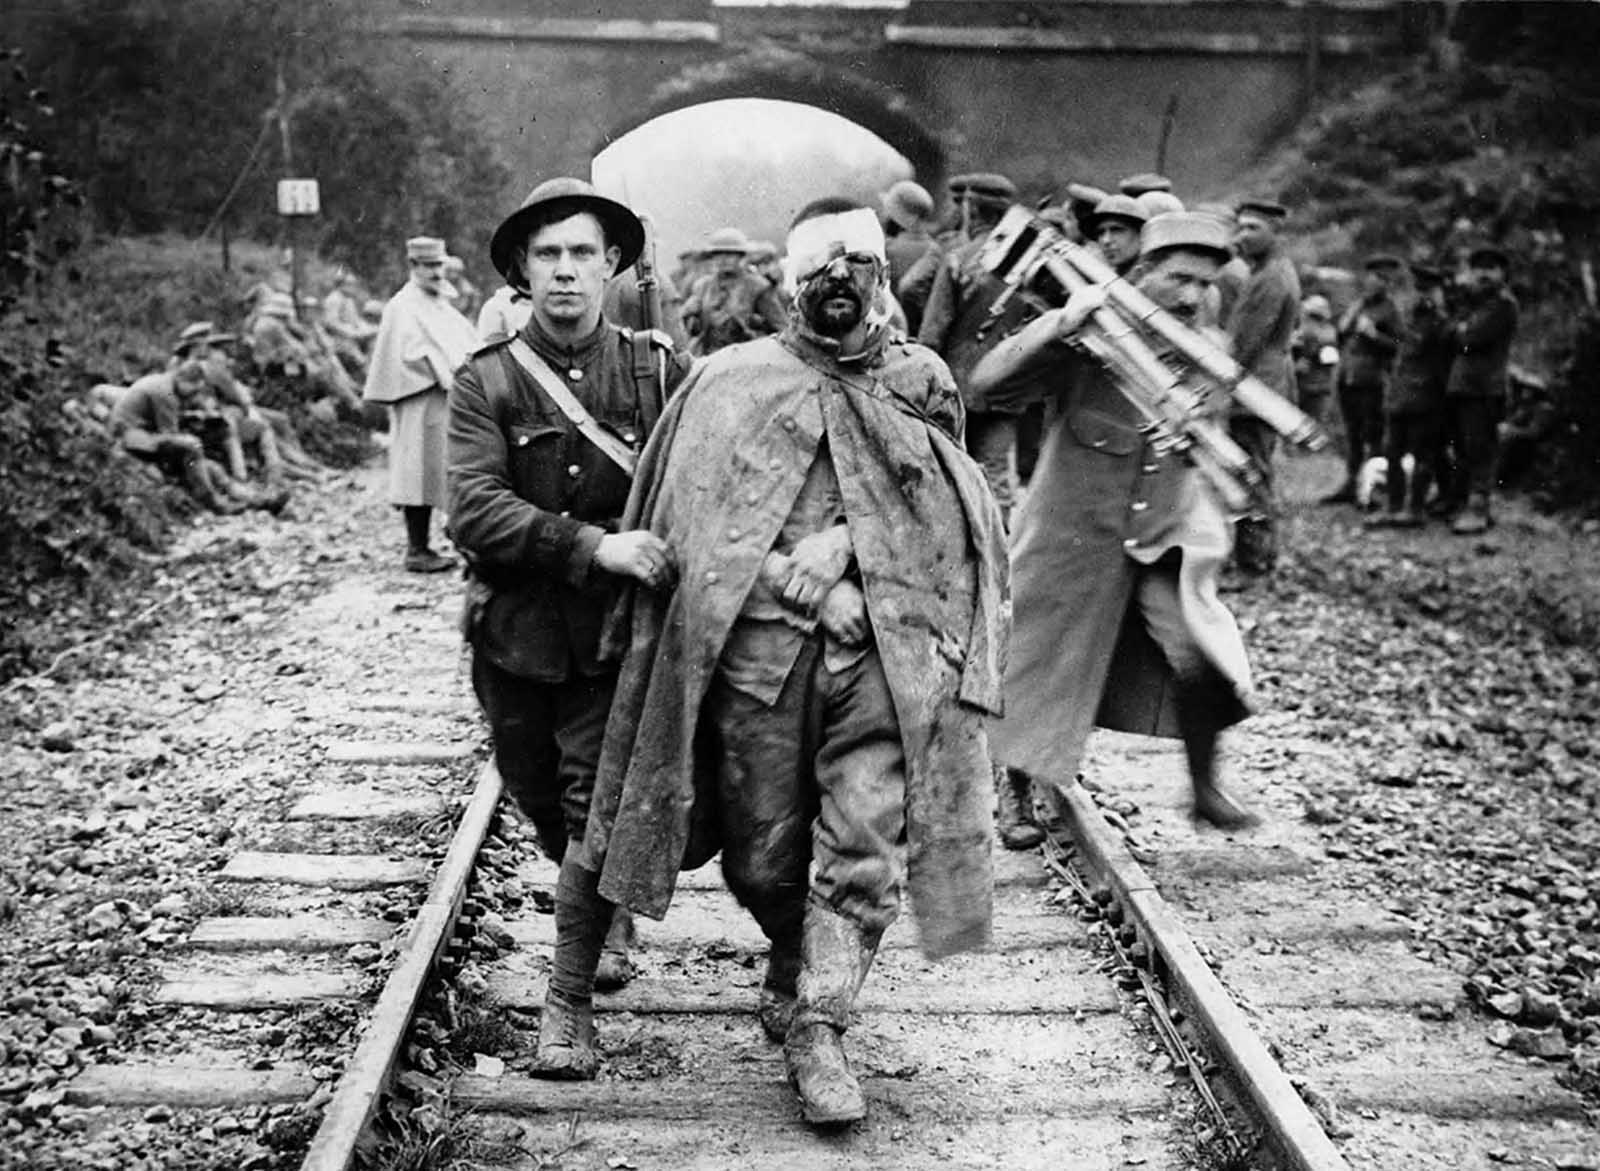 A German prisoner, wounded and muddy, helped by a British soldier along a railway track. A man, possibly in French military uniform, is shown behind them, holding a camera and tripod, ca. 1916.